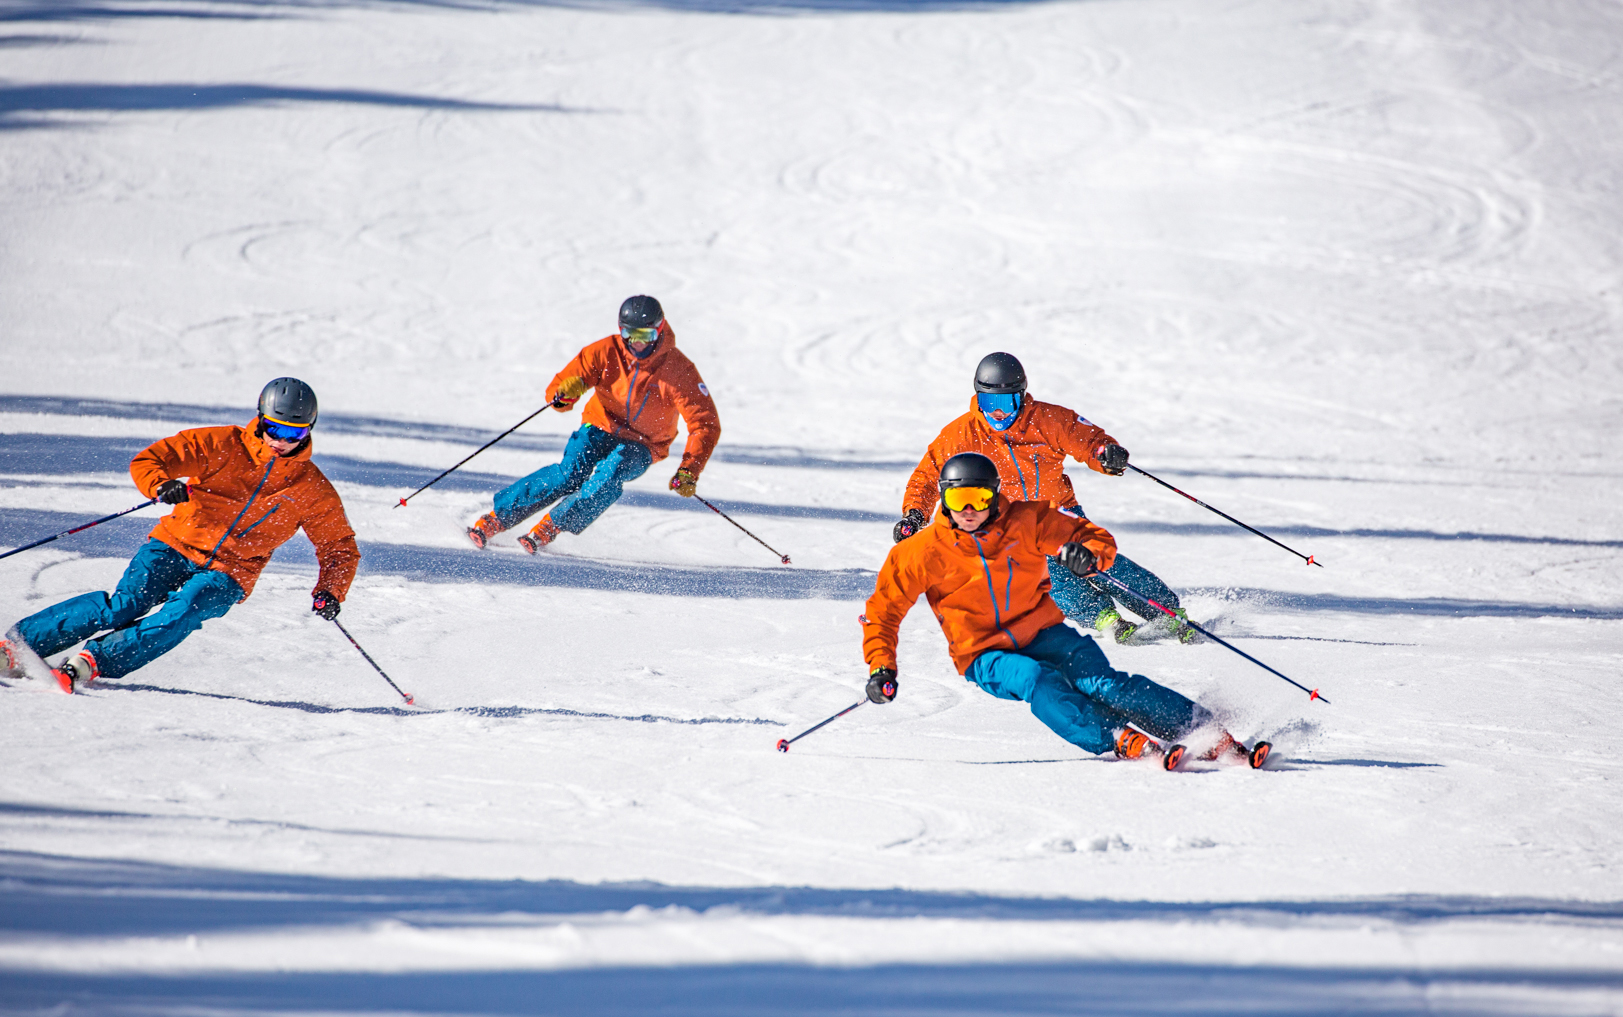 The PSIA Alpine Team skis at Demonstration Run at Interski 2019